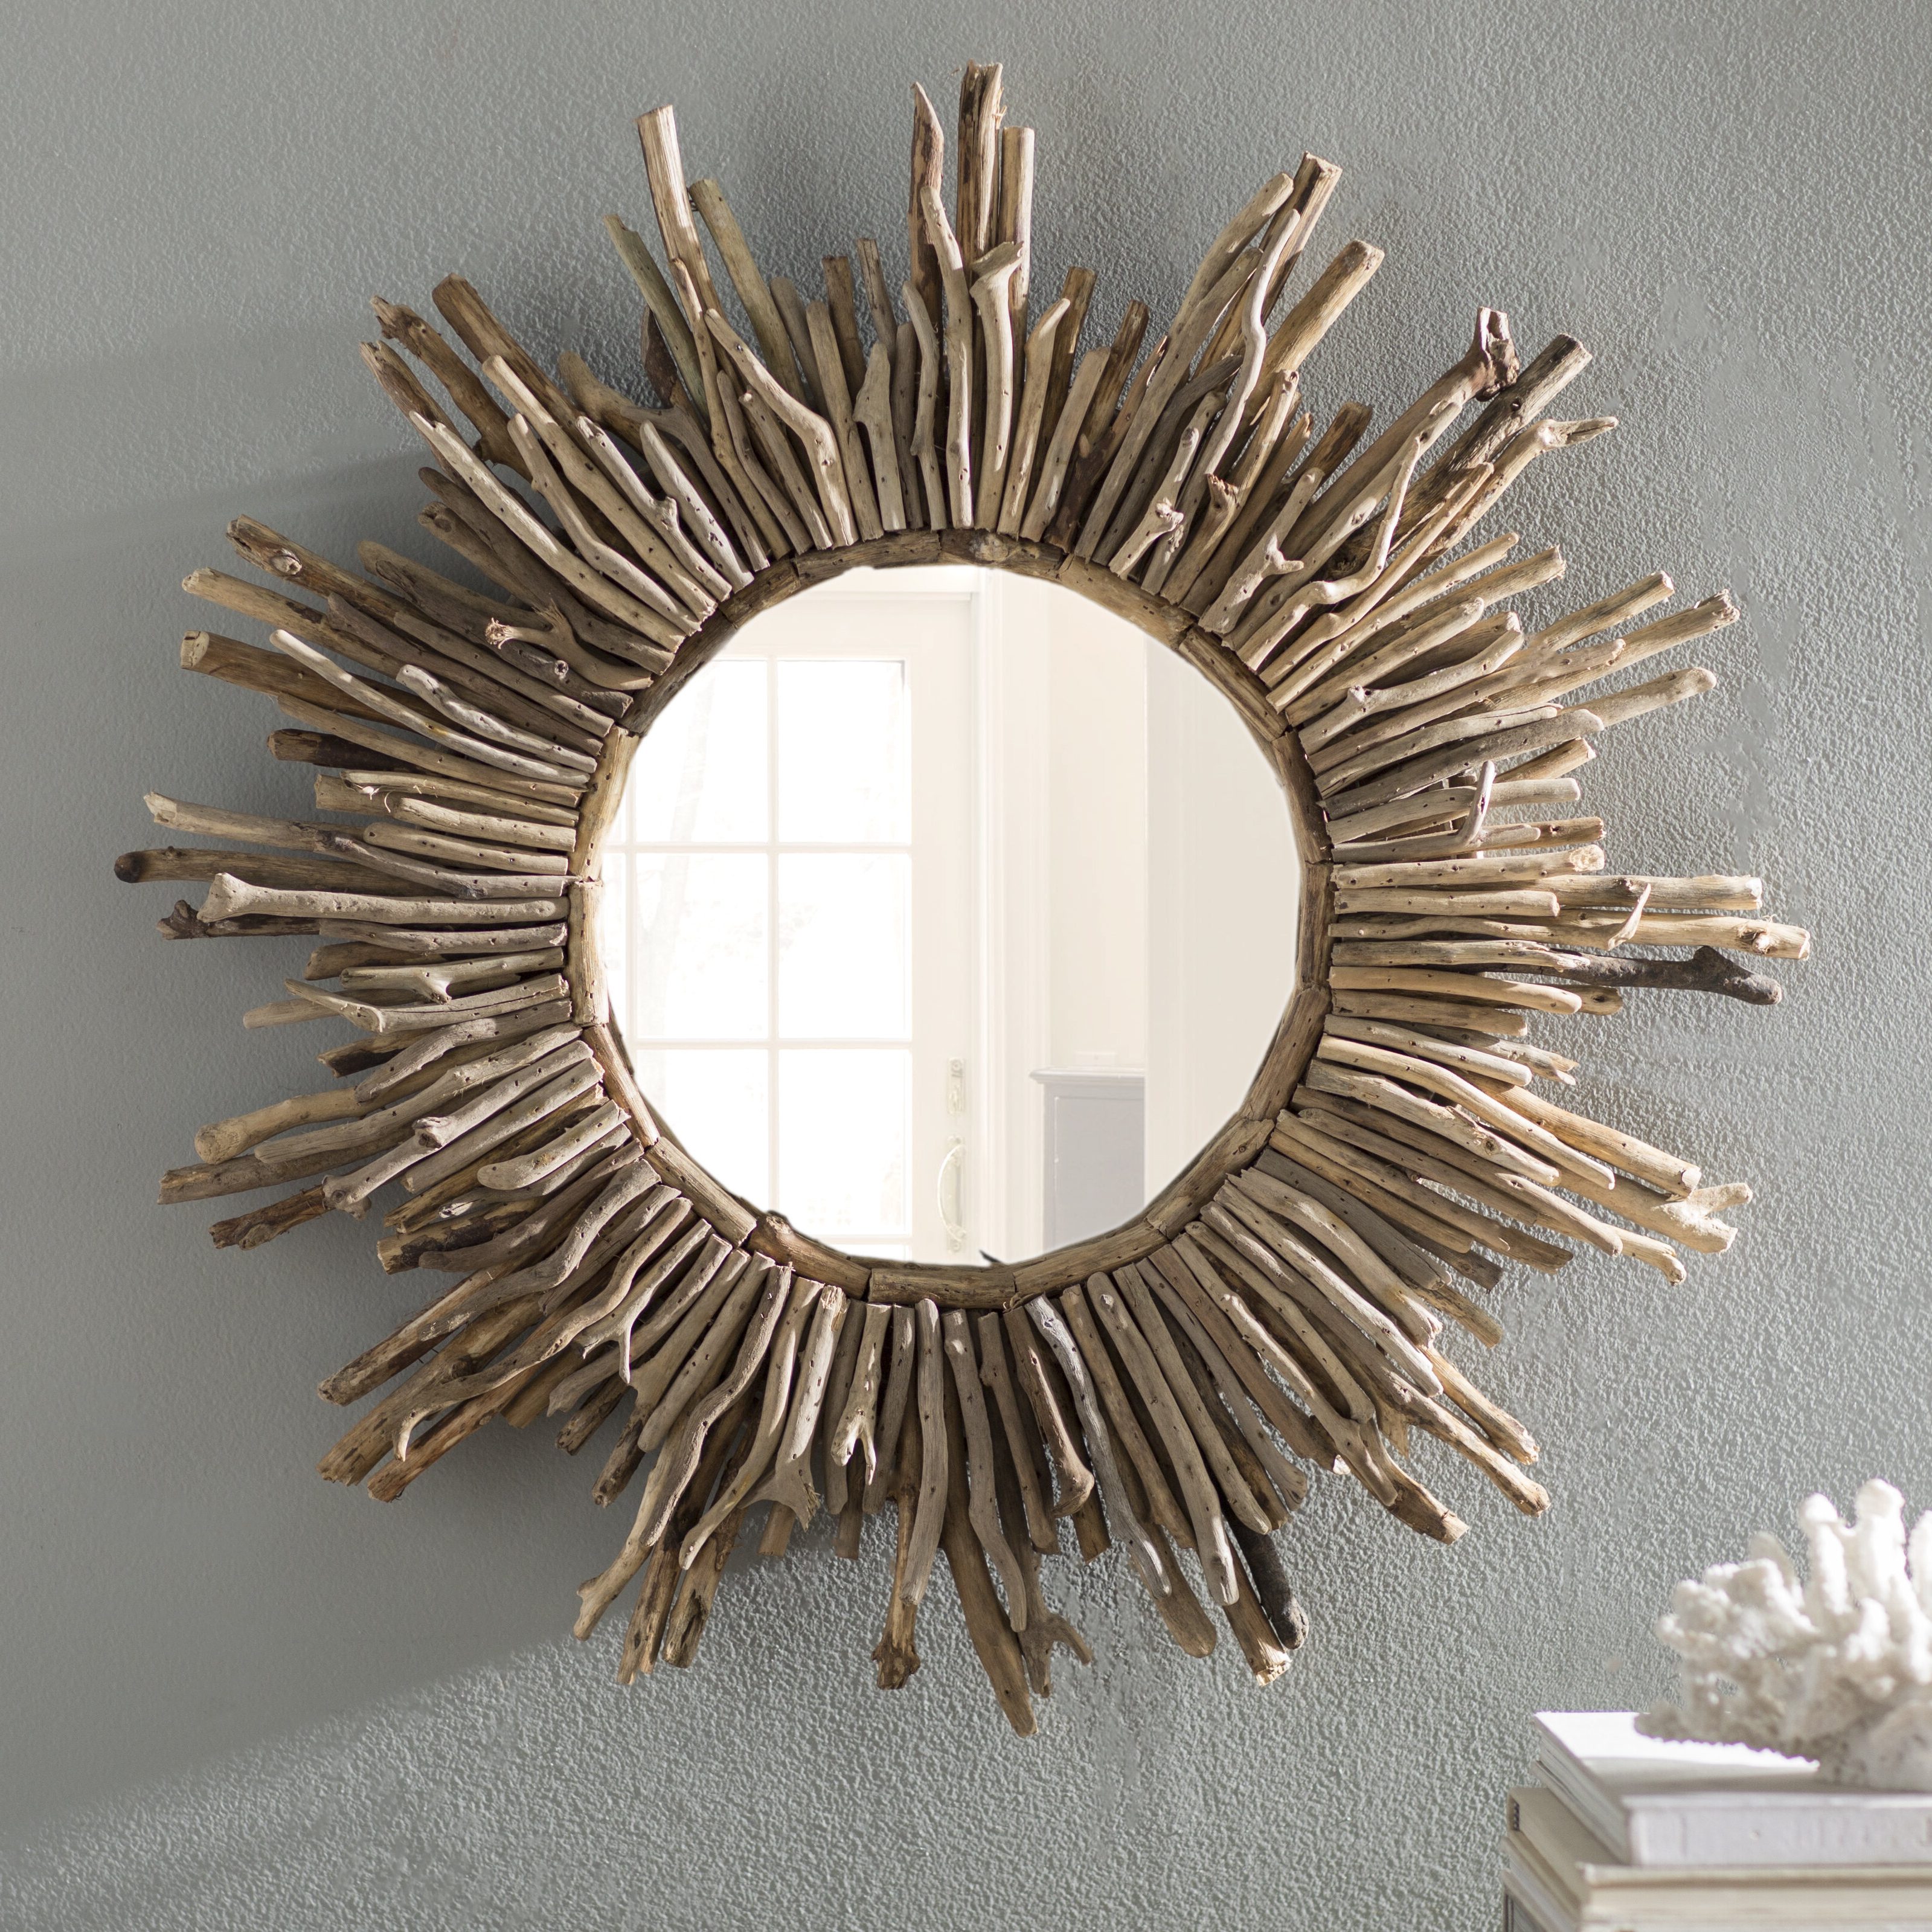 Most Recent Sunburst Traditional Accent Mirror Inside Perillo Burst Wood Accent Mirrors (Gallery 15 of 20)